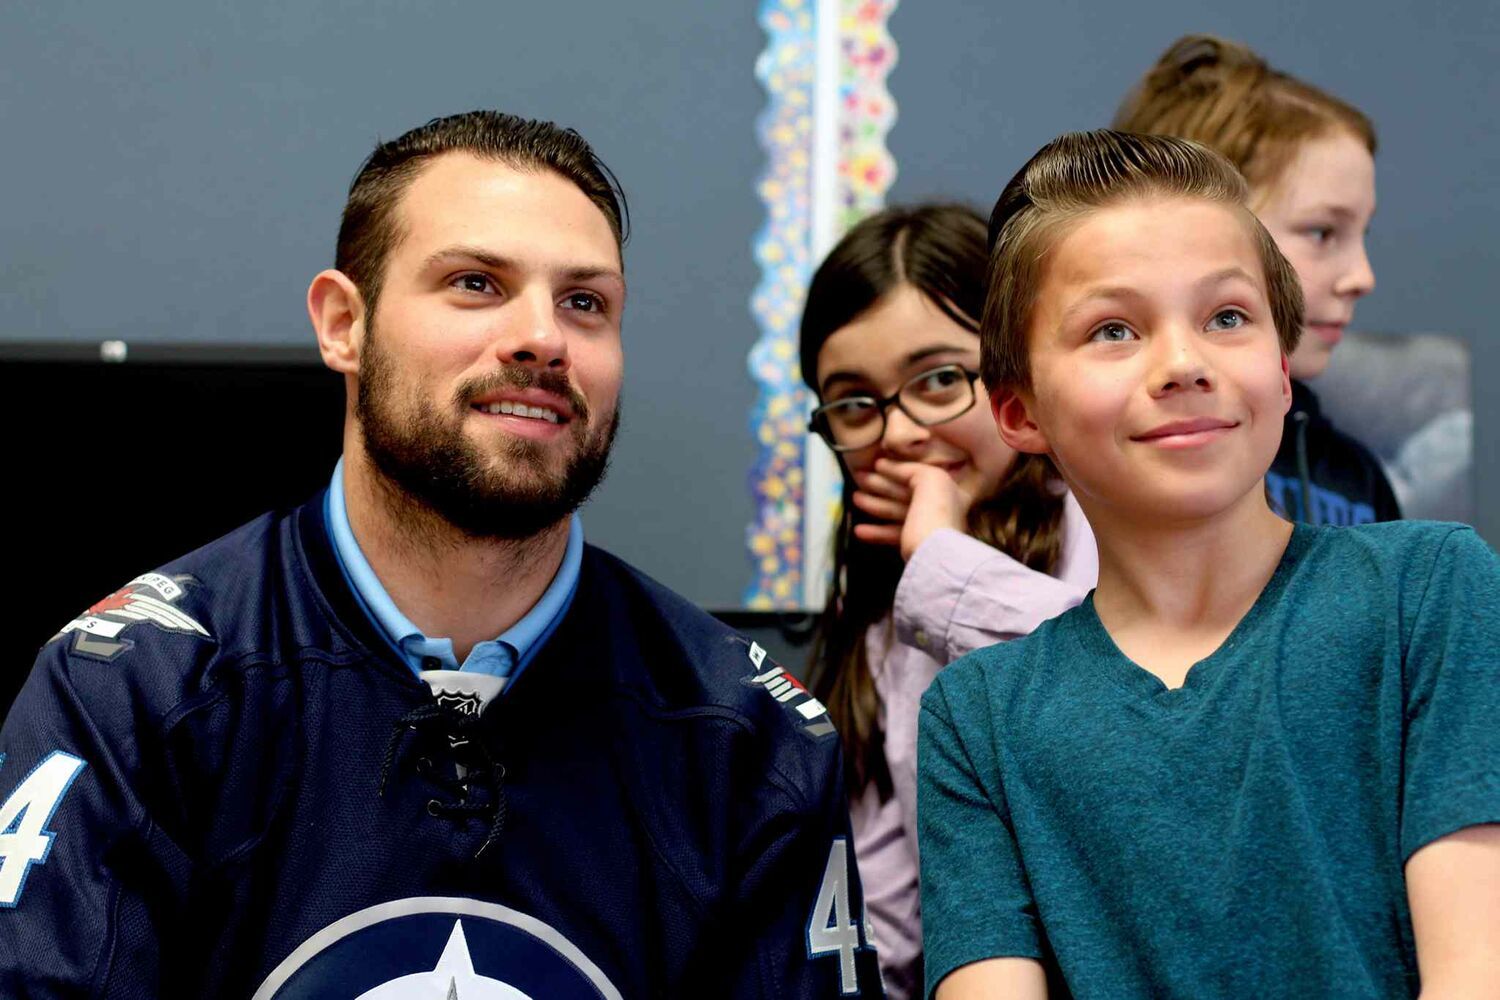 Winnipeg Jets defenceman Zach Bogosian paid a visit to students at St. Ignatius School as a reward for winning the Classroom Recycling Challenge.  (Jordan Thompson)